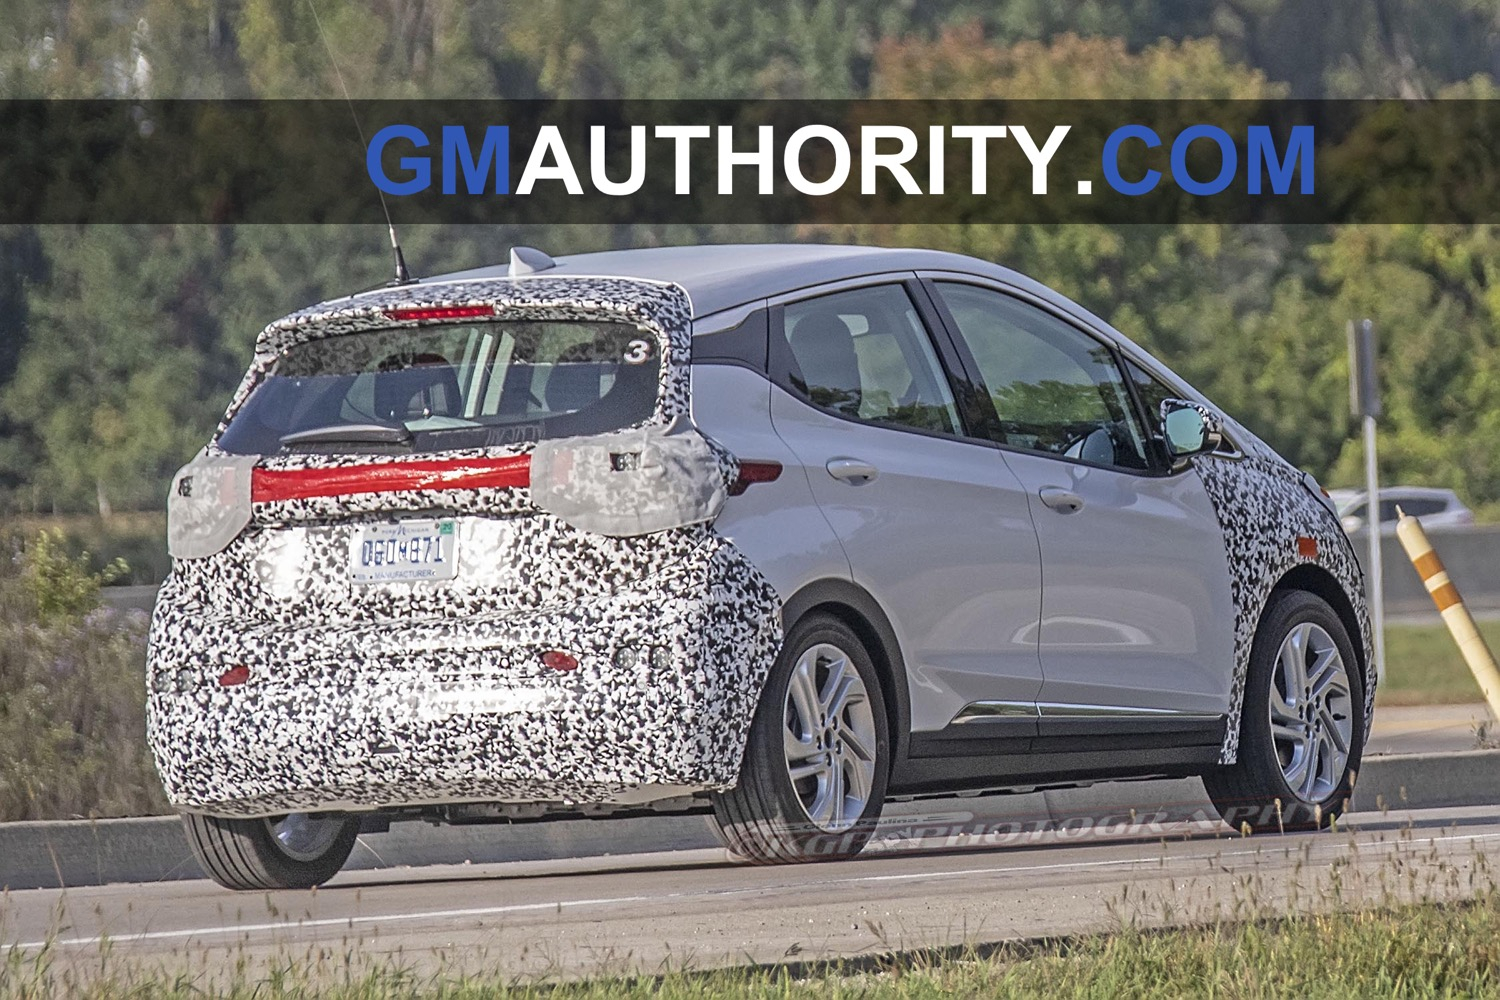 2021 Chevrolet Bolt Ev Refresh Spotted In New Spy Shots | Gm 2021 Chevy Bolt Manual, Mileage, Msrp